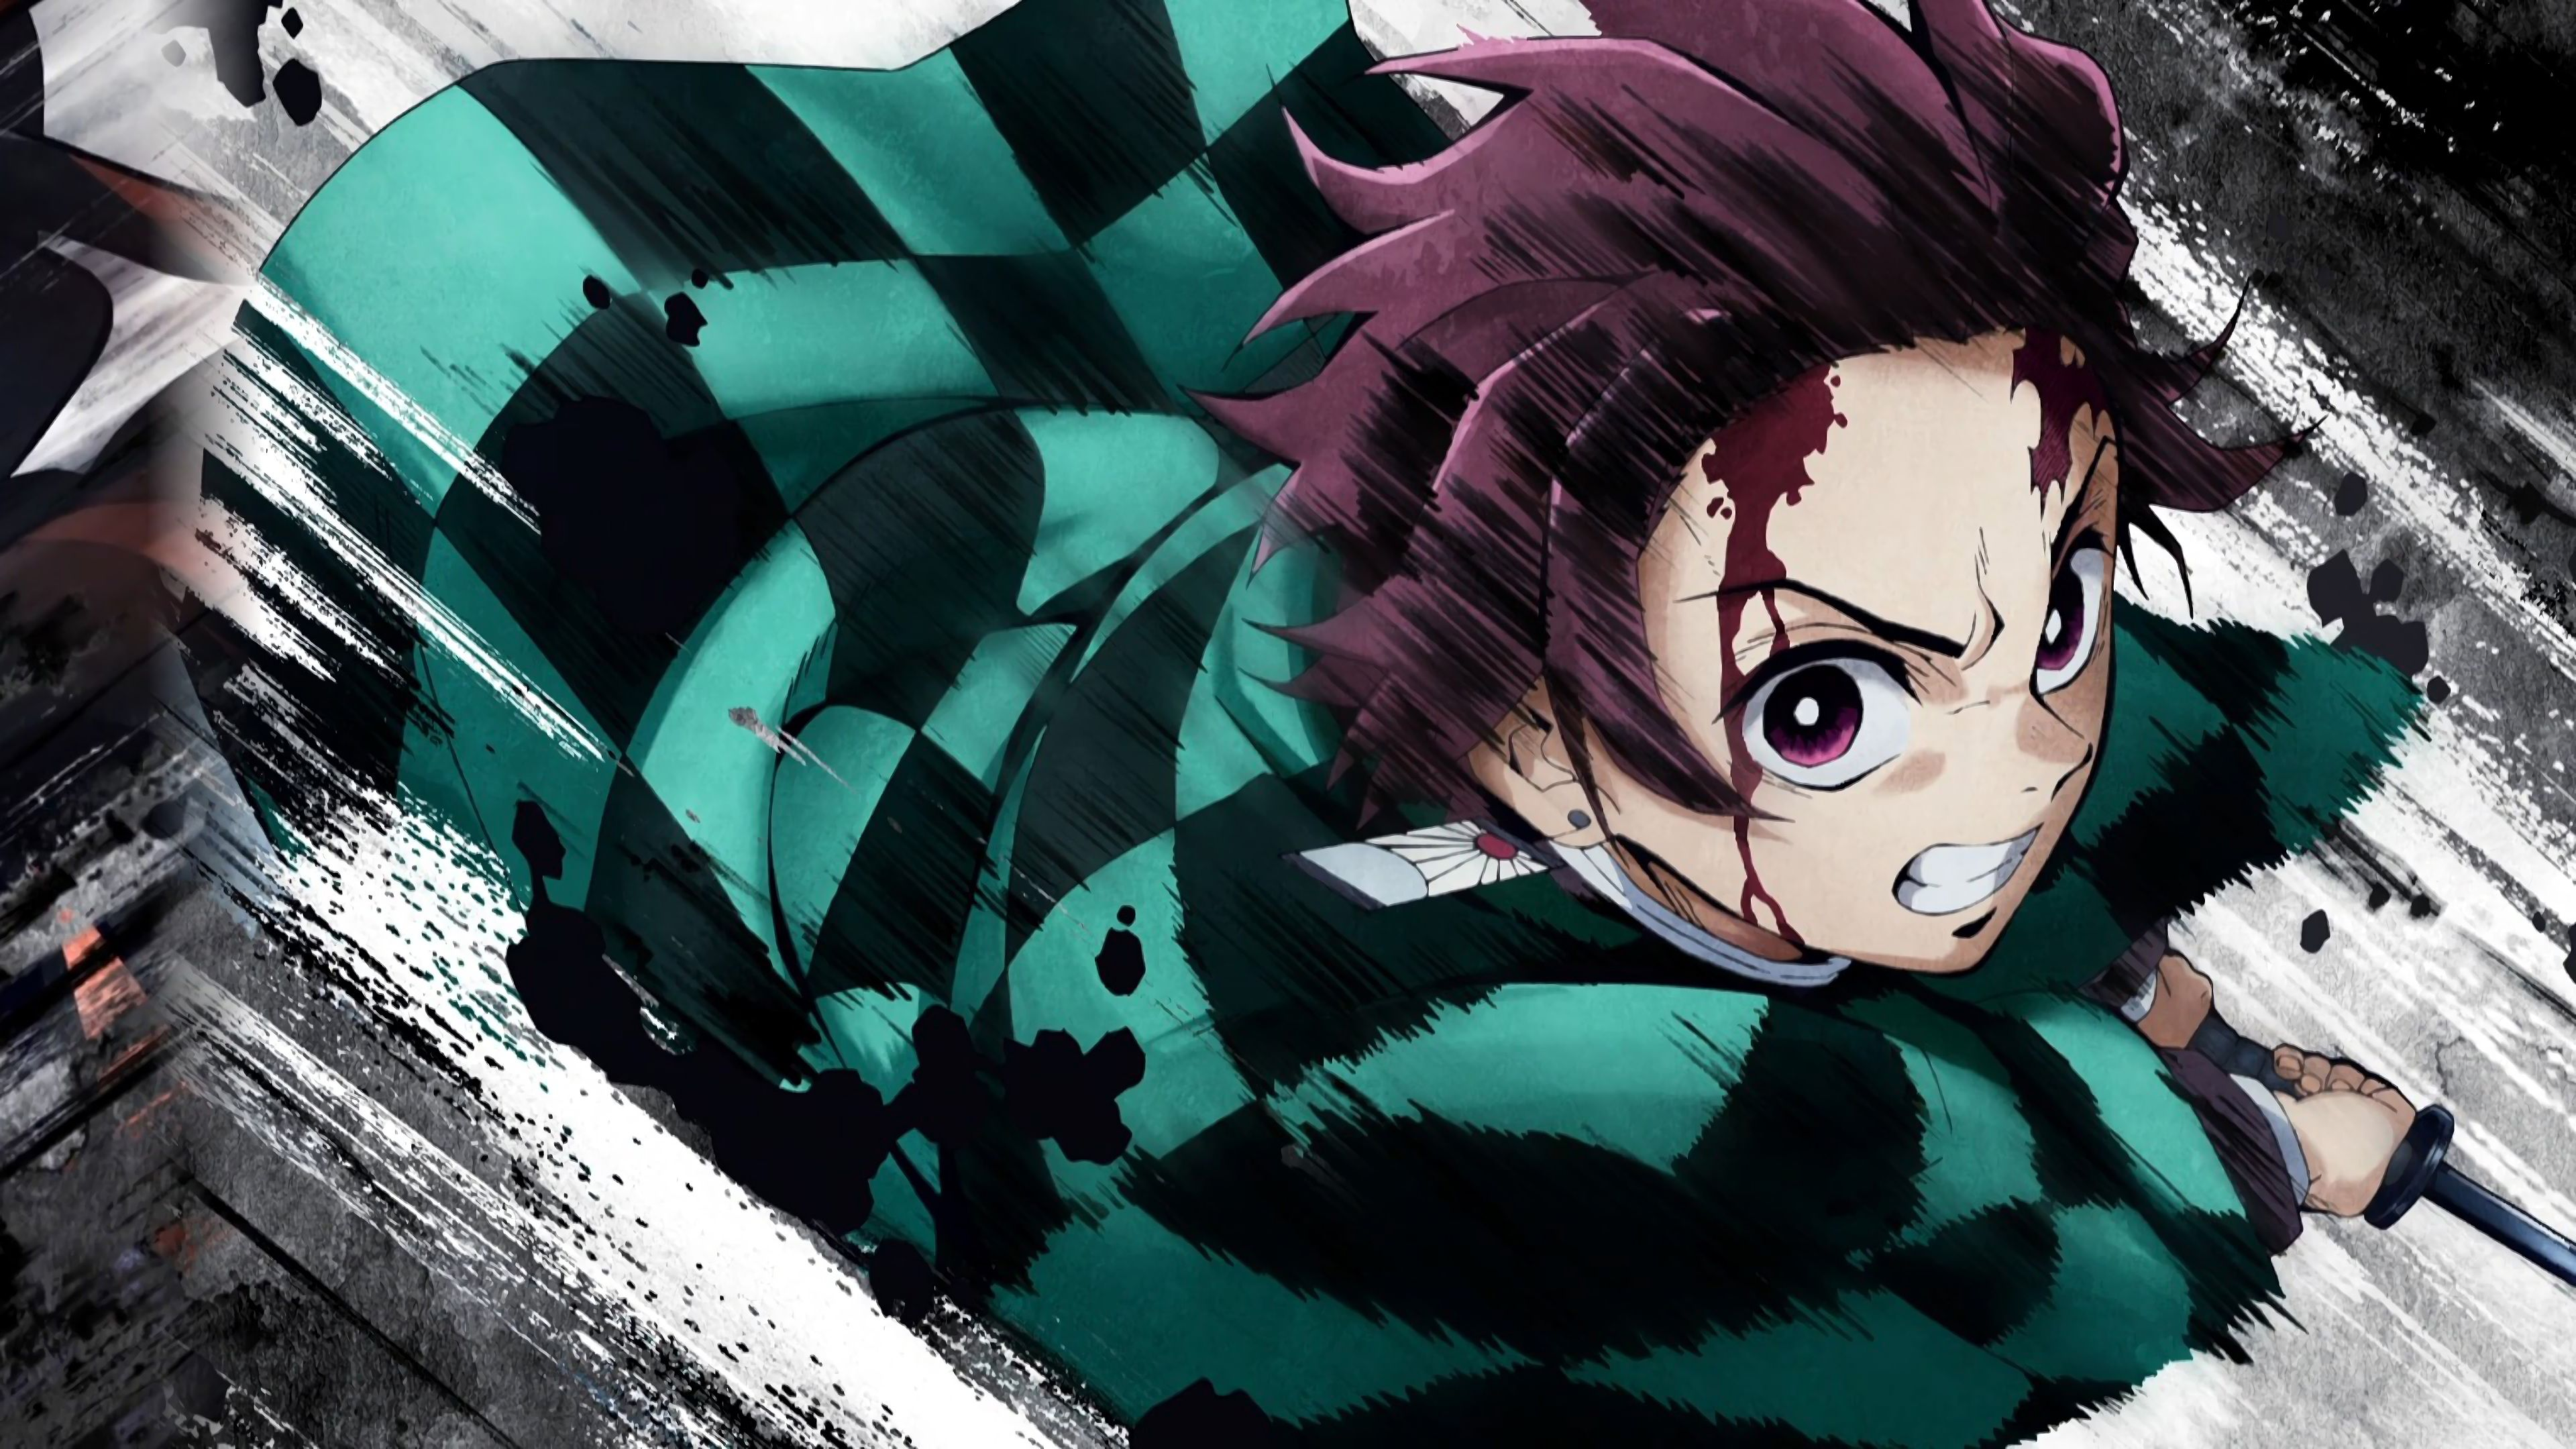 Kimetsu No Yaiba Wallpaper Hd Pc Tanjirou Kamado Kimetsu No Yaiba 4k Wallpaper 34 Yuinime Wallpaper Engine Anime Free Download In 2020 Slayer Anime Anime Demon Demon